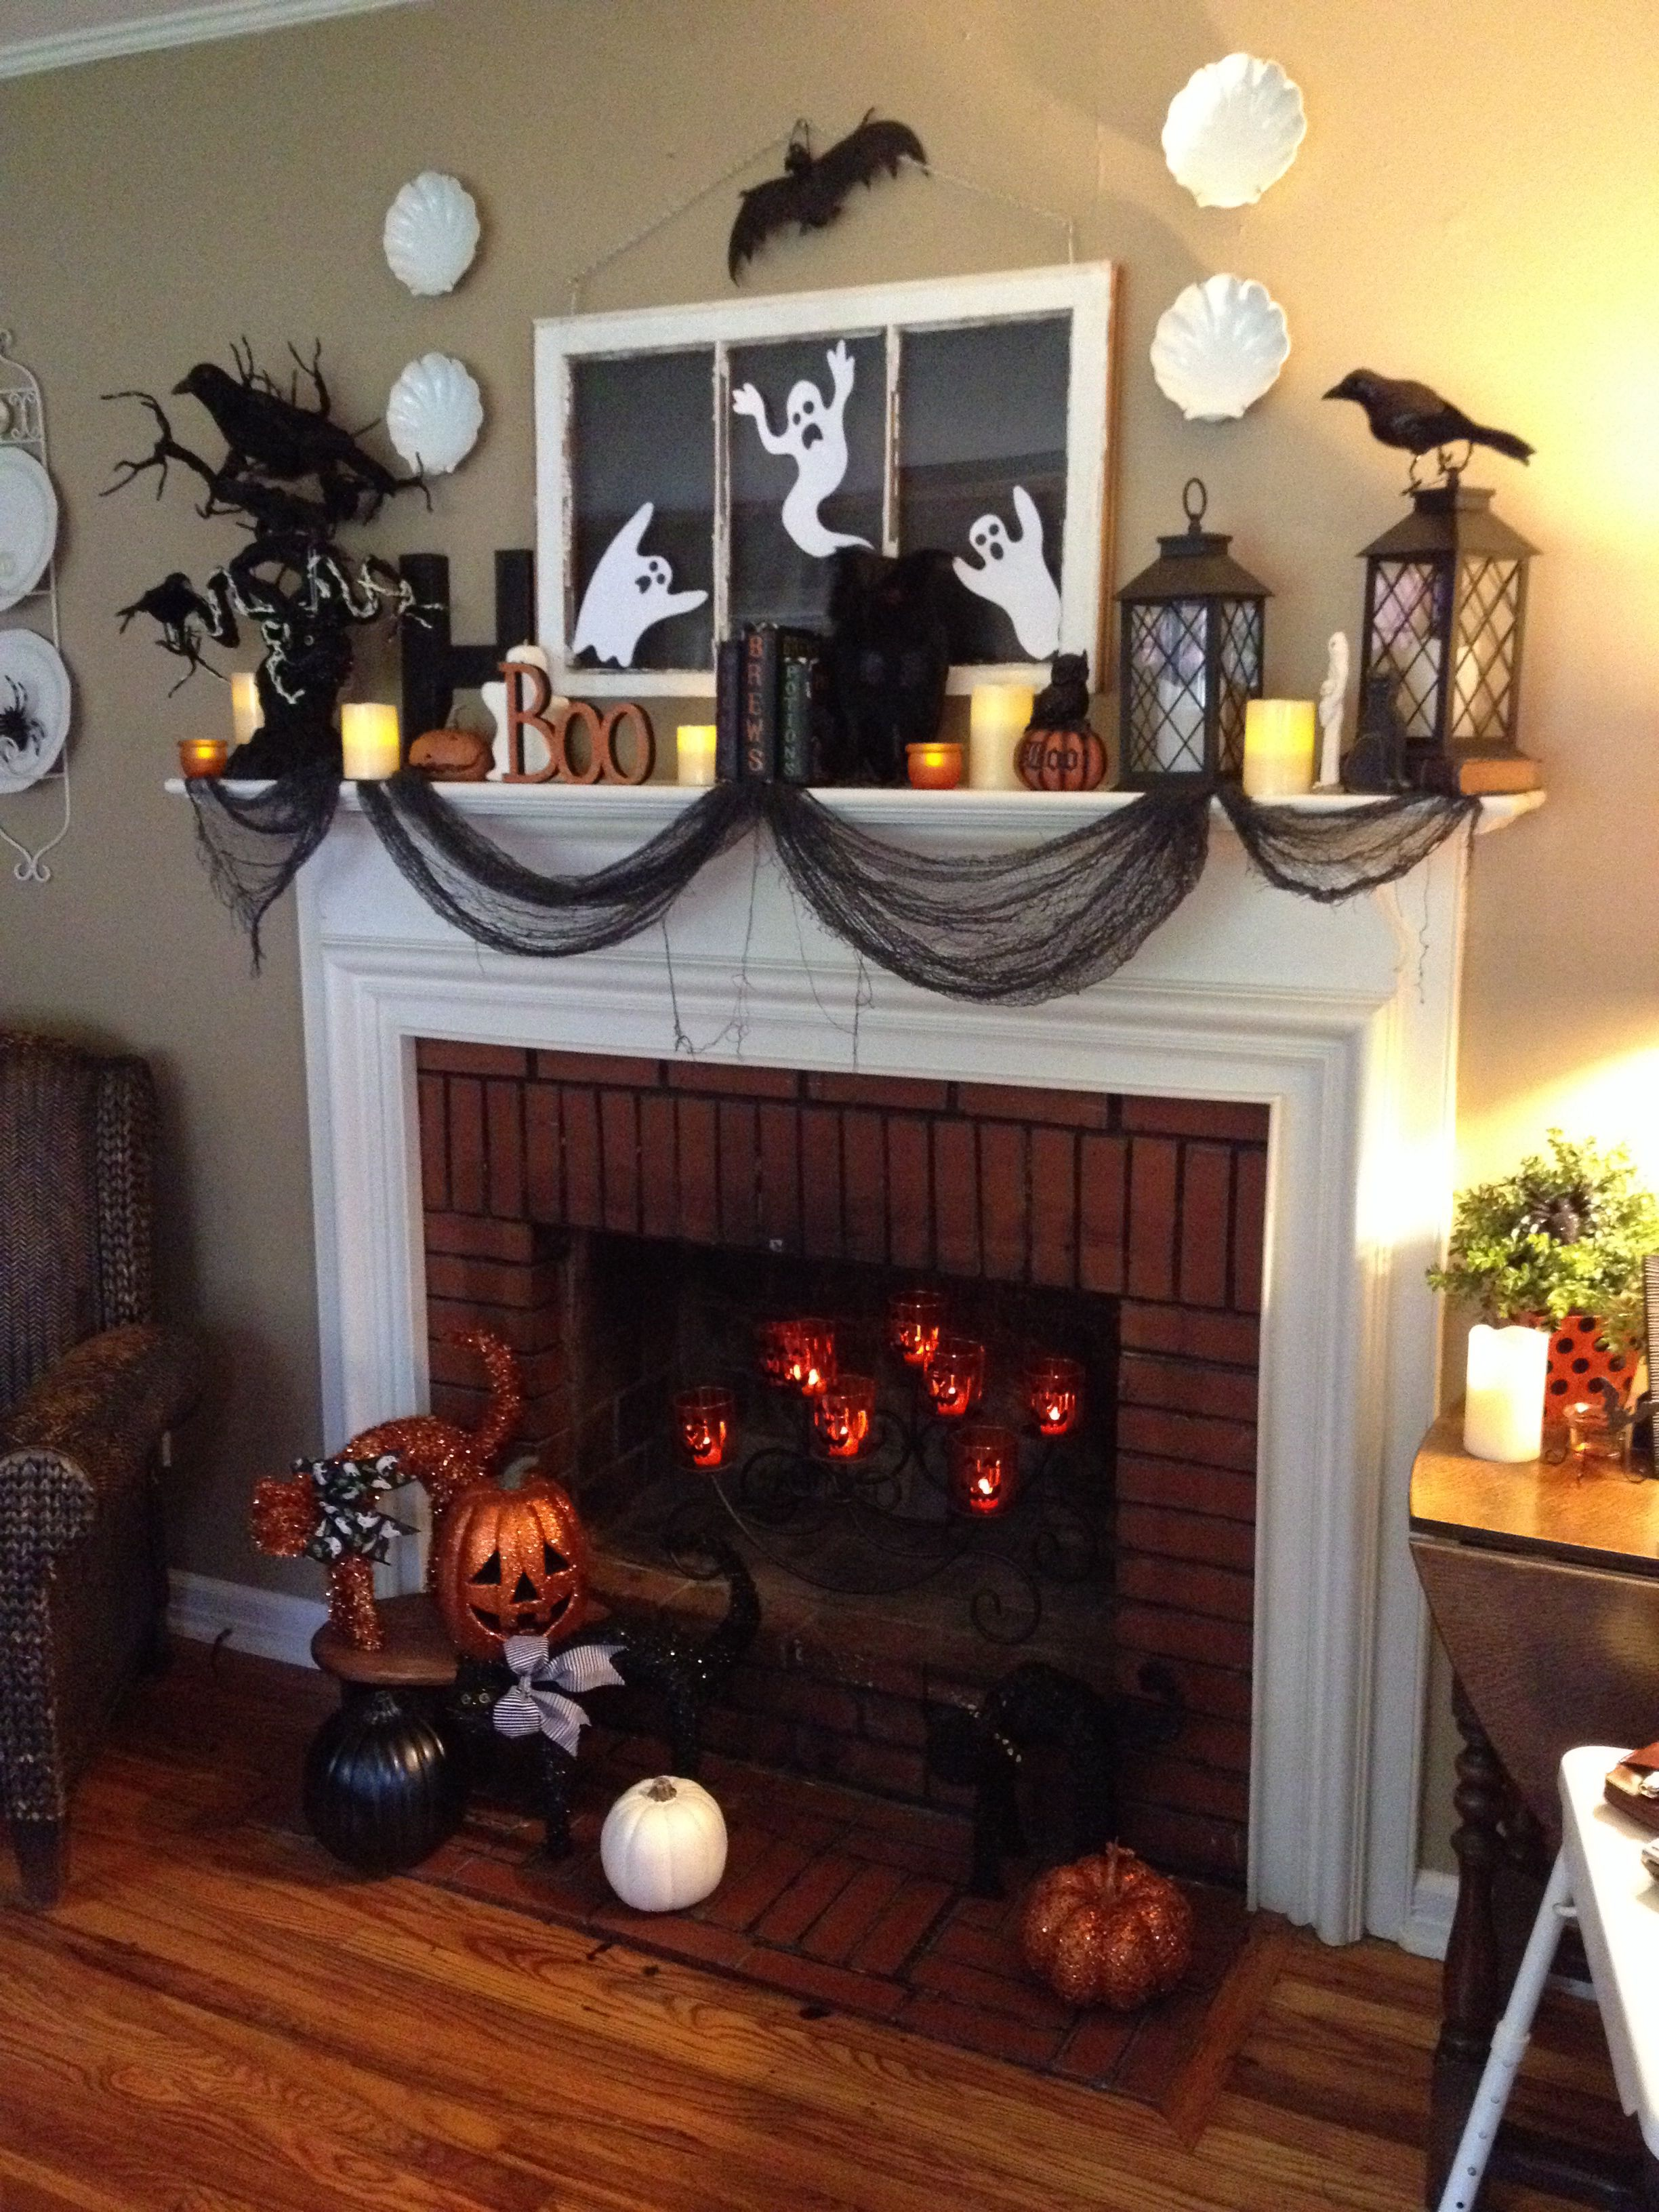 15 halloween mantle decorating ideas i especially love the jack o lanterns inside the fireplace. Black Bedroom Furniture Sets. Home Design Ideas